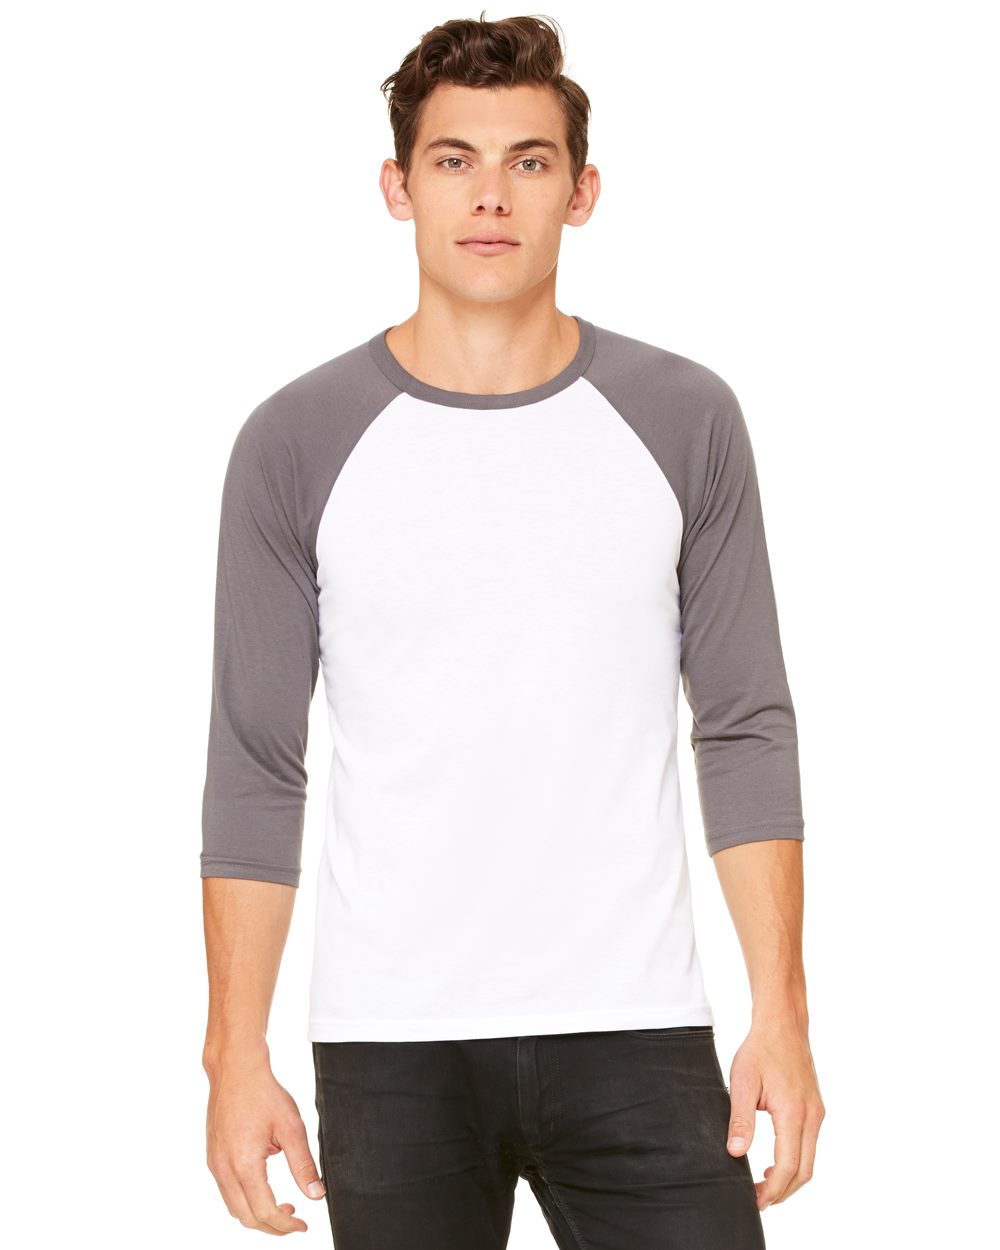 Bella + Canvas Unisex Three-Quarter Sleeve Baseball T-Shirt